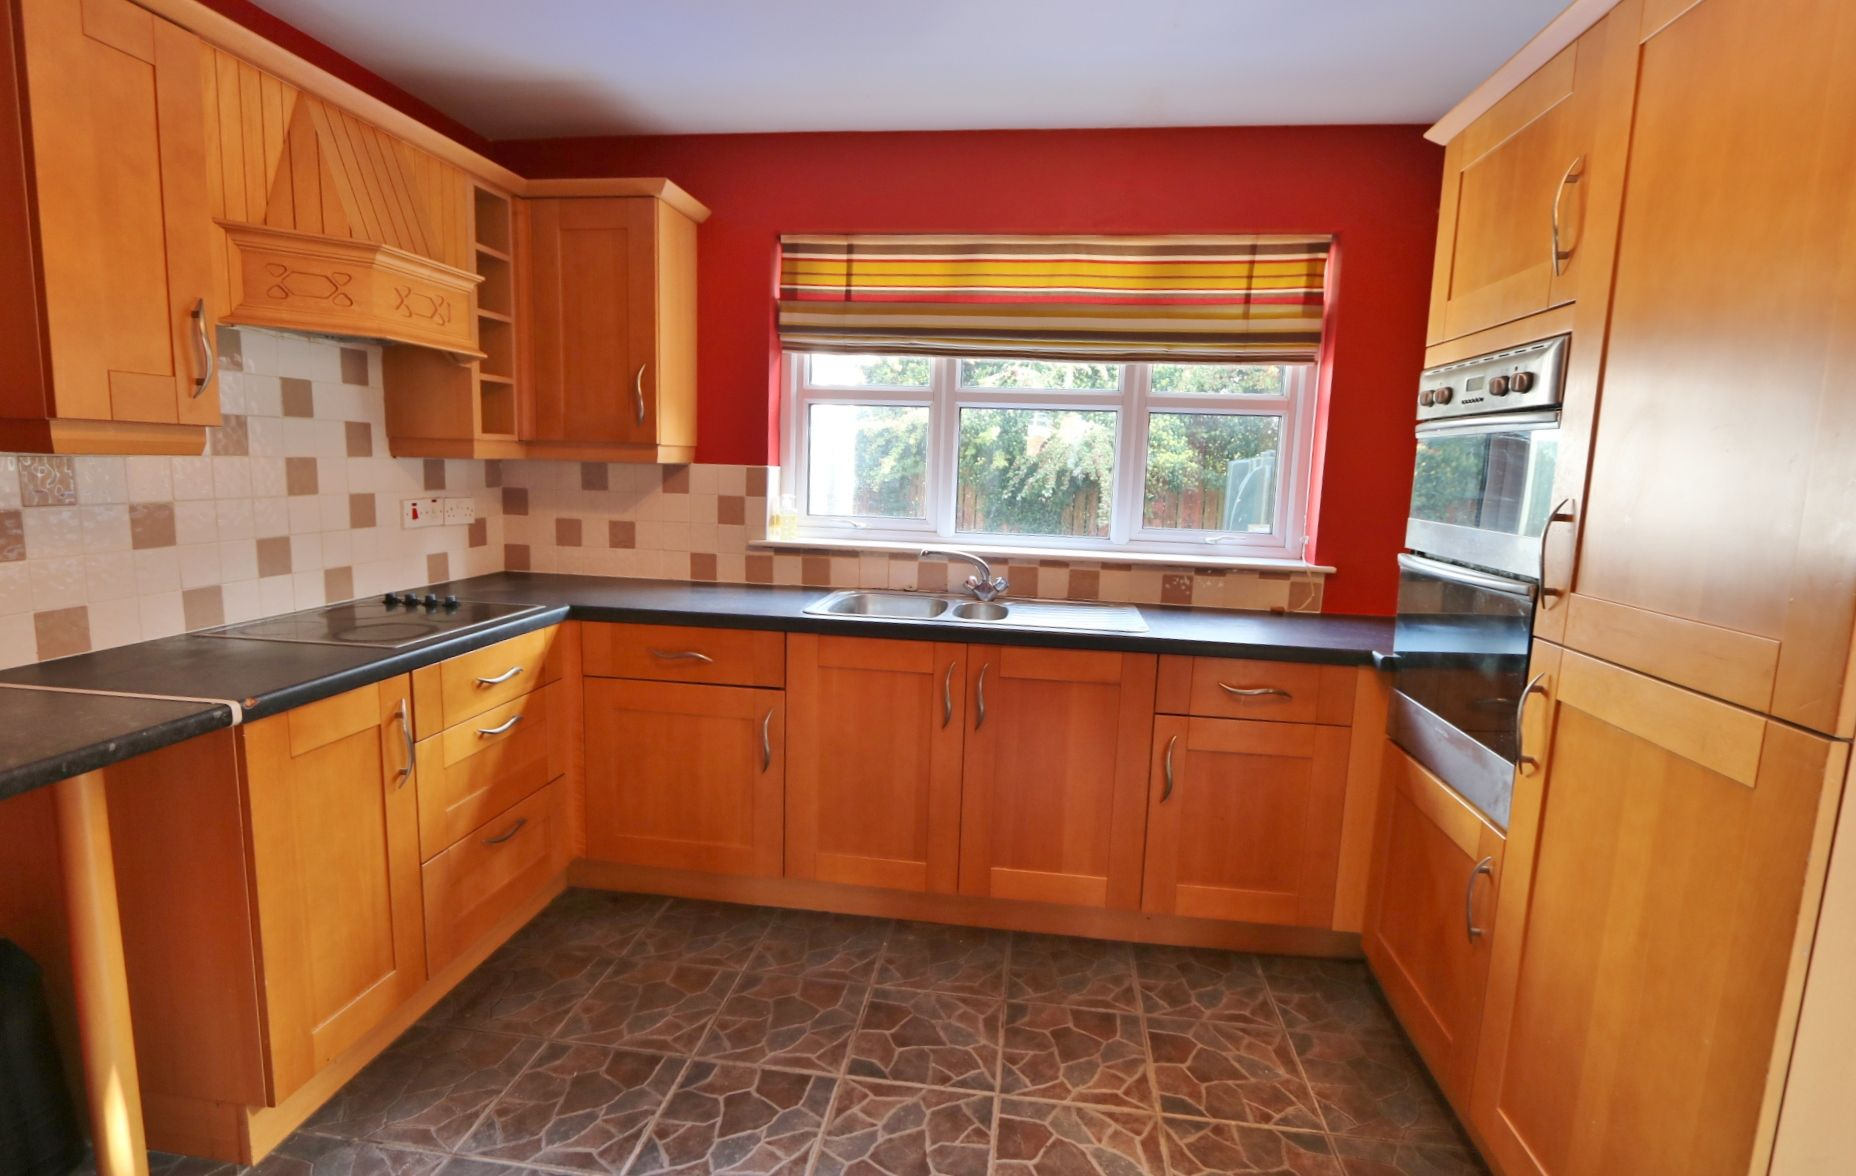 4 bedroom semi-detached house For Sale in Antrim - Photograph 6